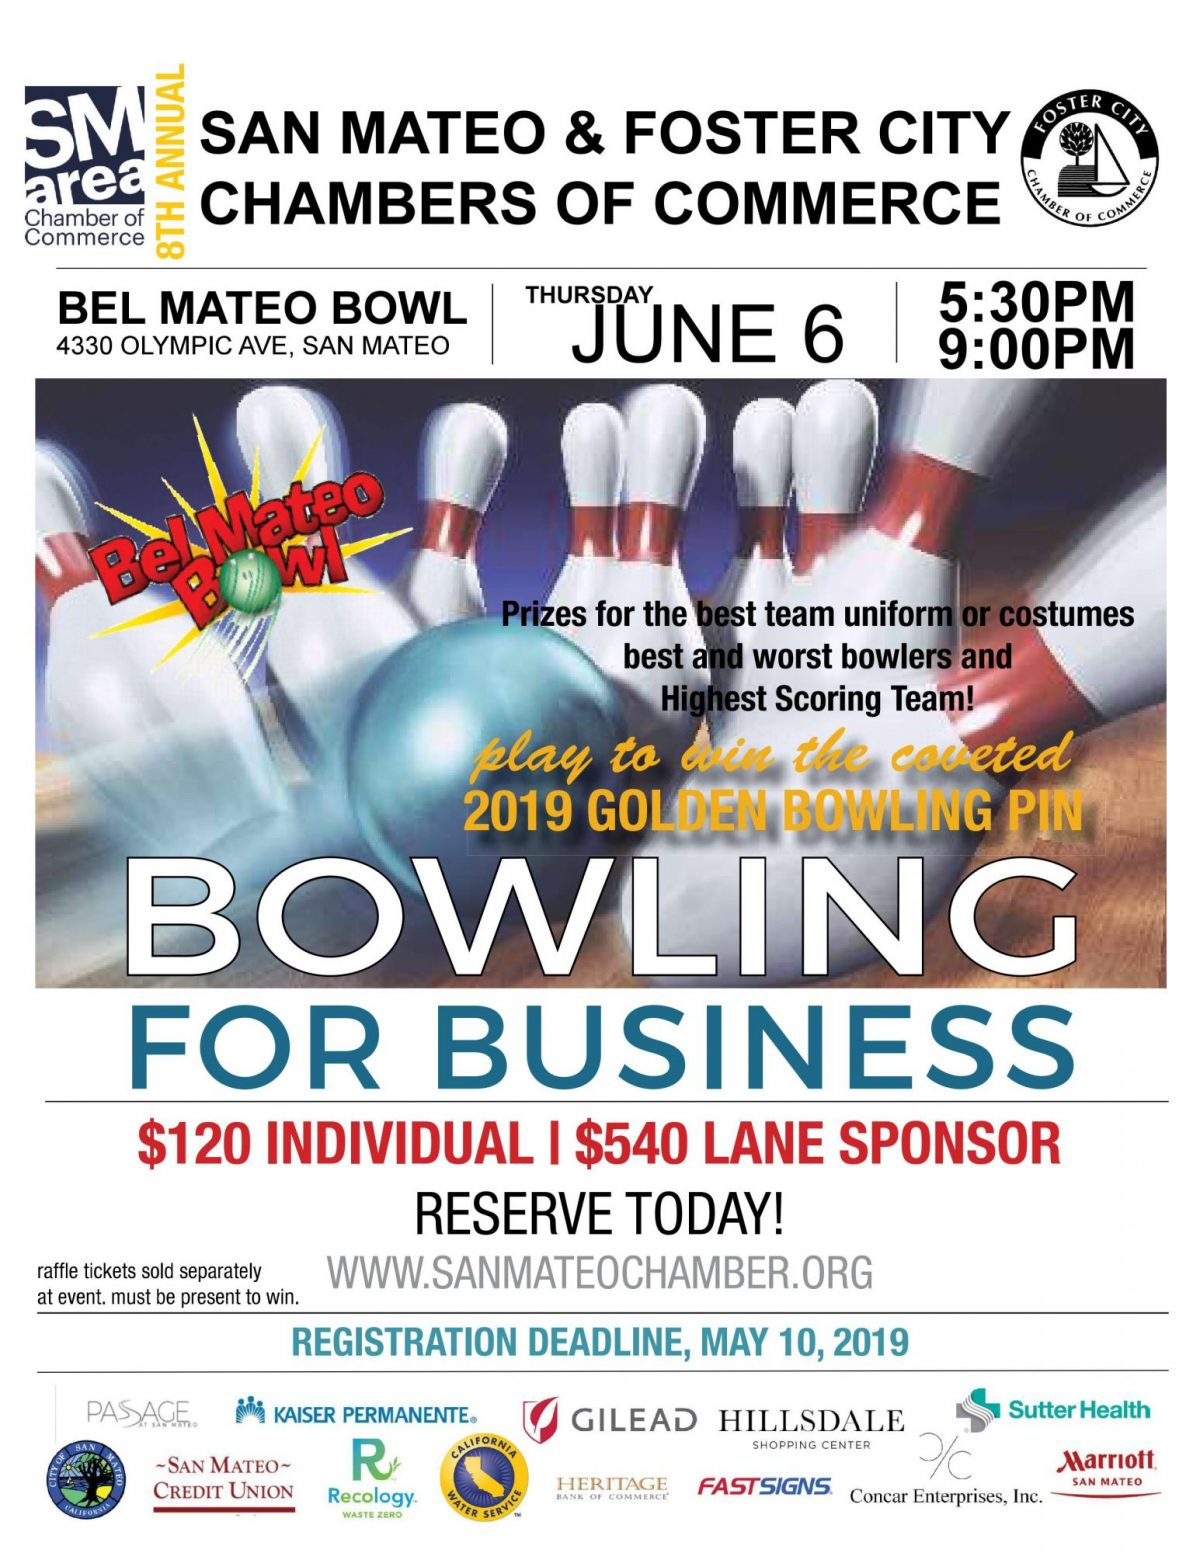 2019 Bowling for Business Sign and Registration Form 20190312-images